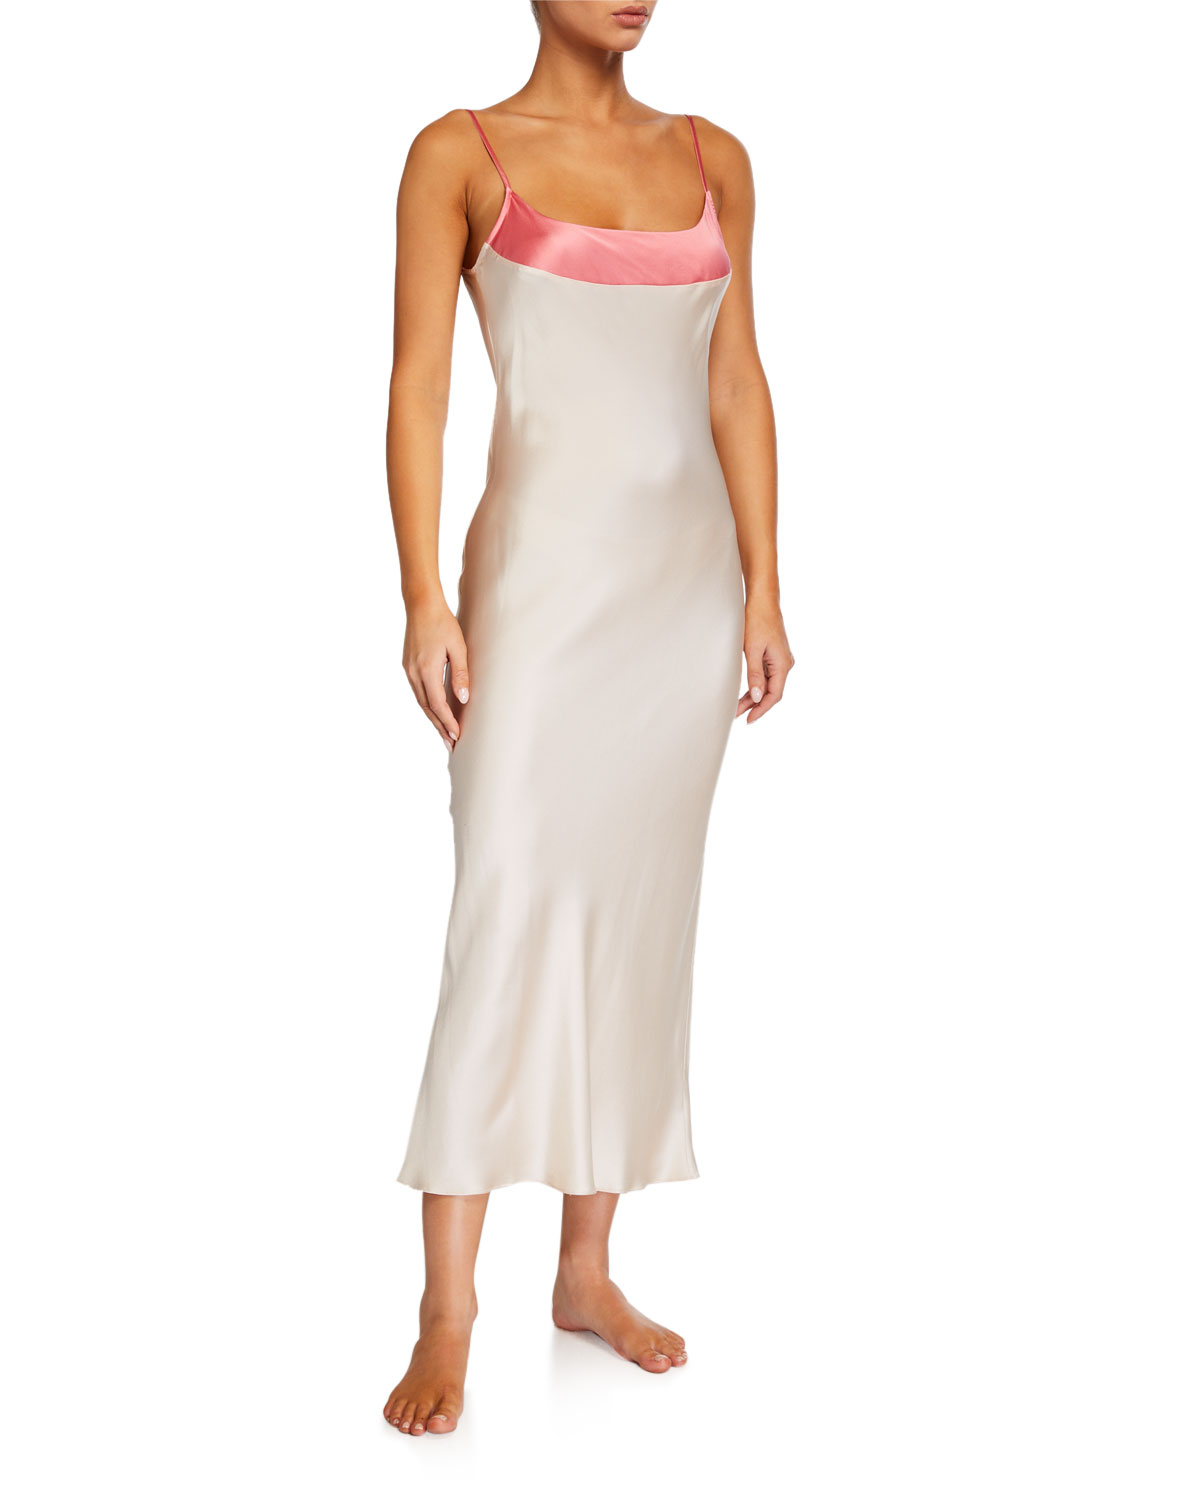 Ginia WIDE-BAND SILK NIGHTGOWN